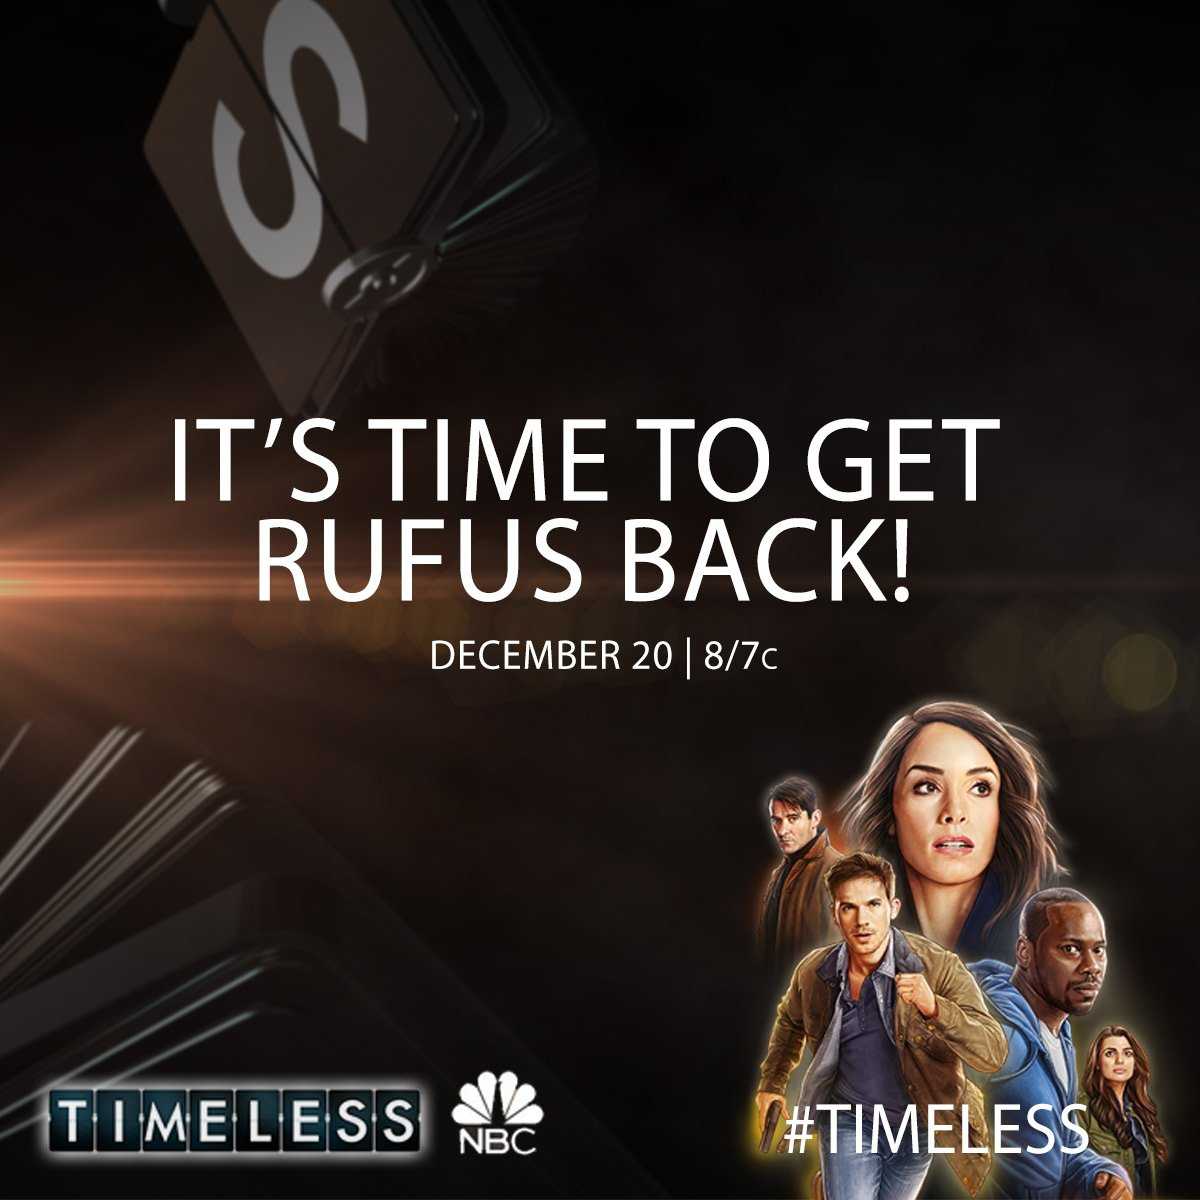 NBC Announces Air Date for 'Timeless' Movie Event Full of Christmas Spirit